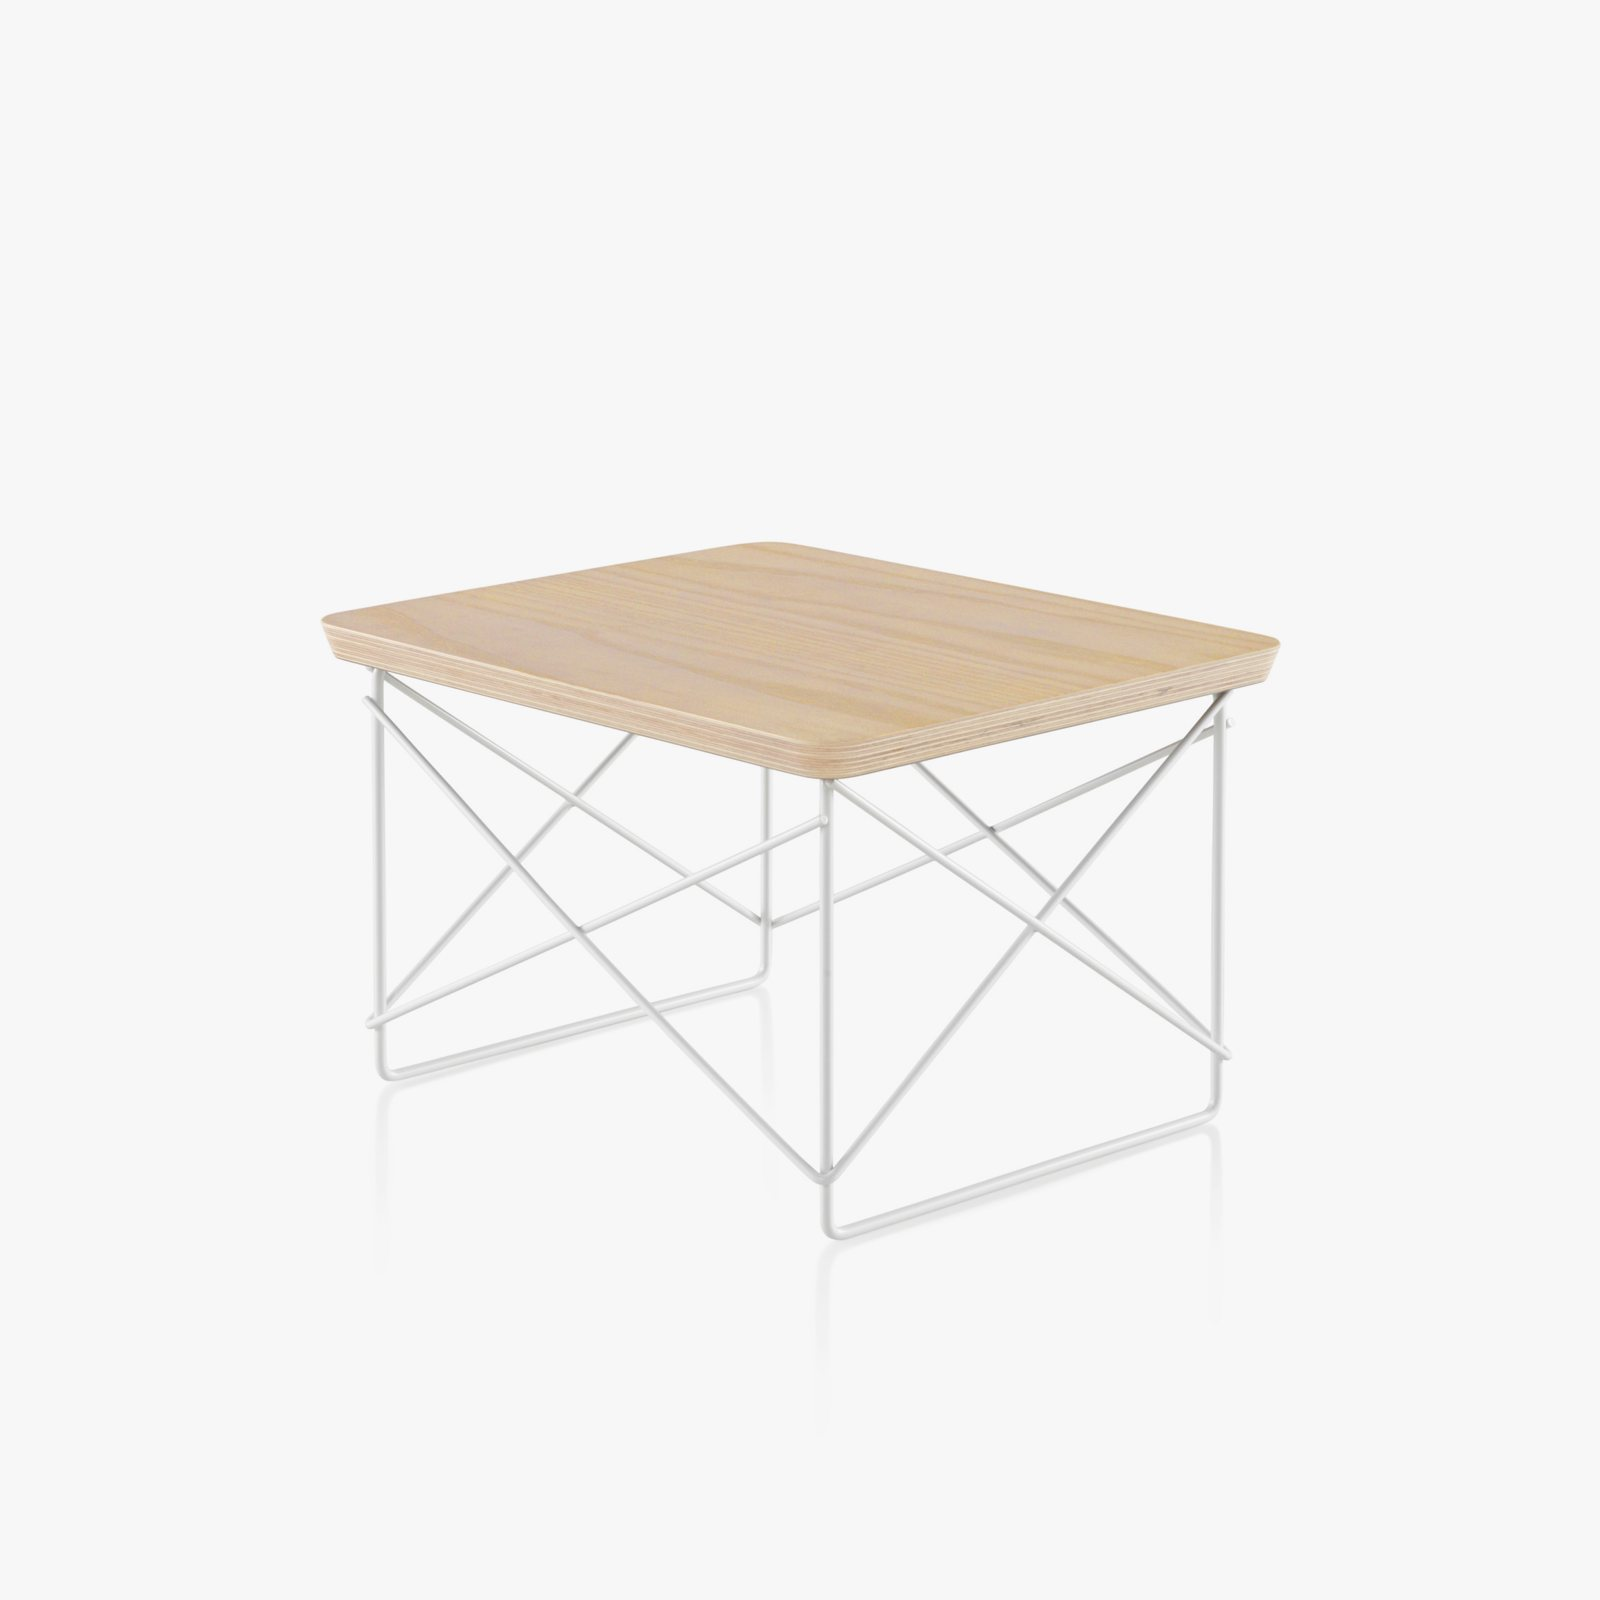 Eames wire base low table by charles ray eames for herman miller eames wire base low table white ash top with white base keyboard keysfo Images